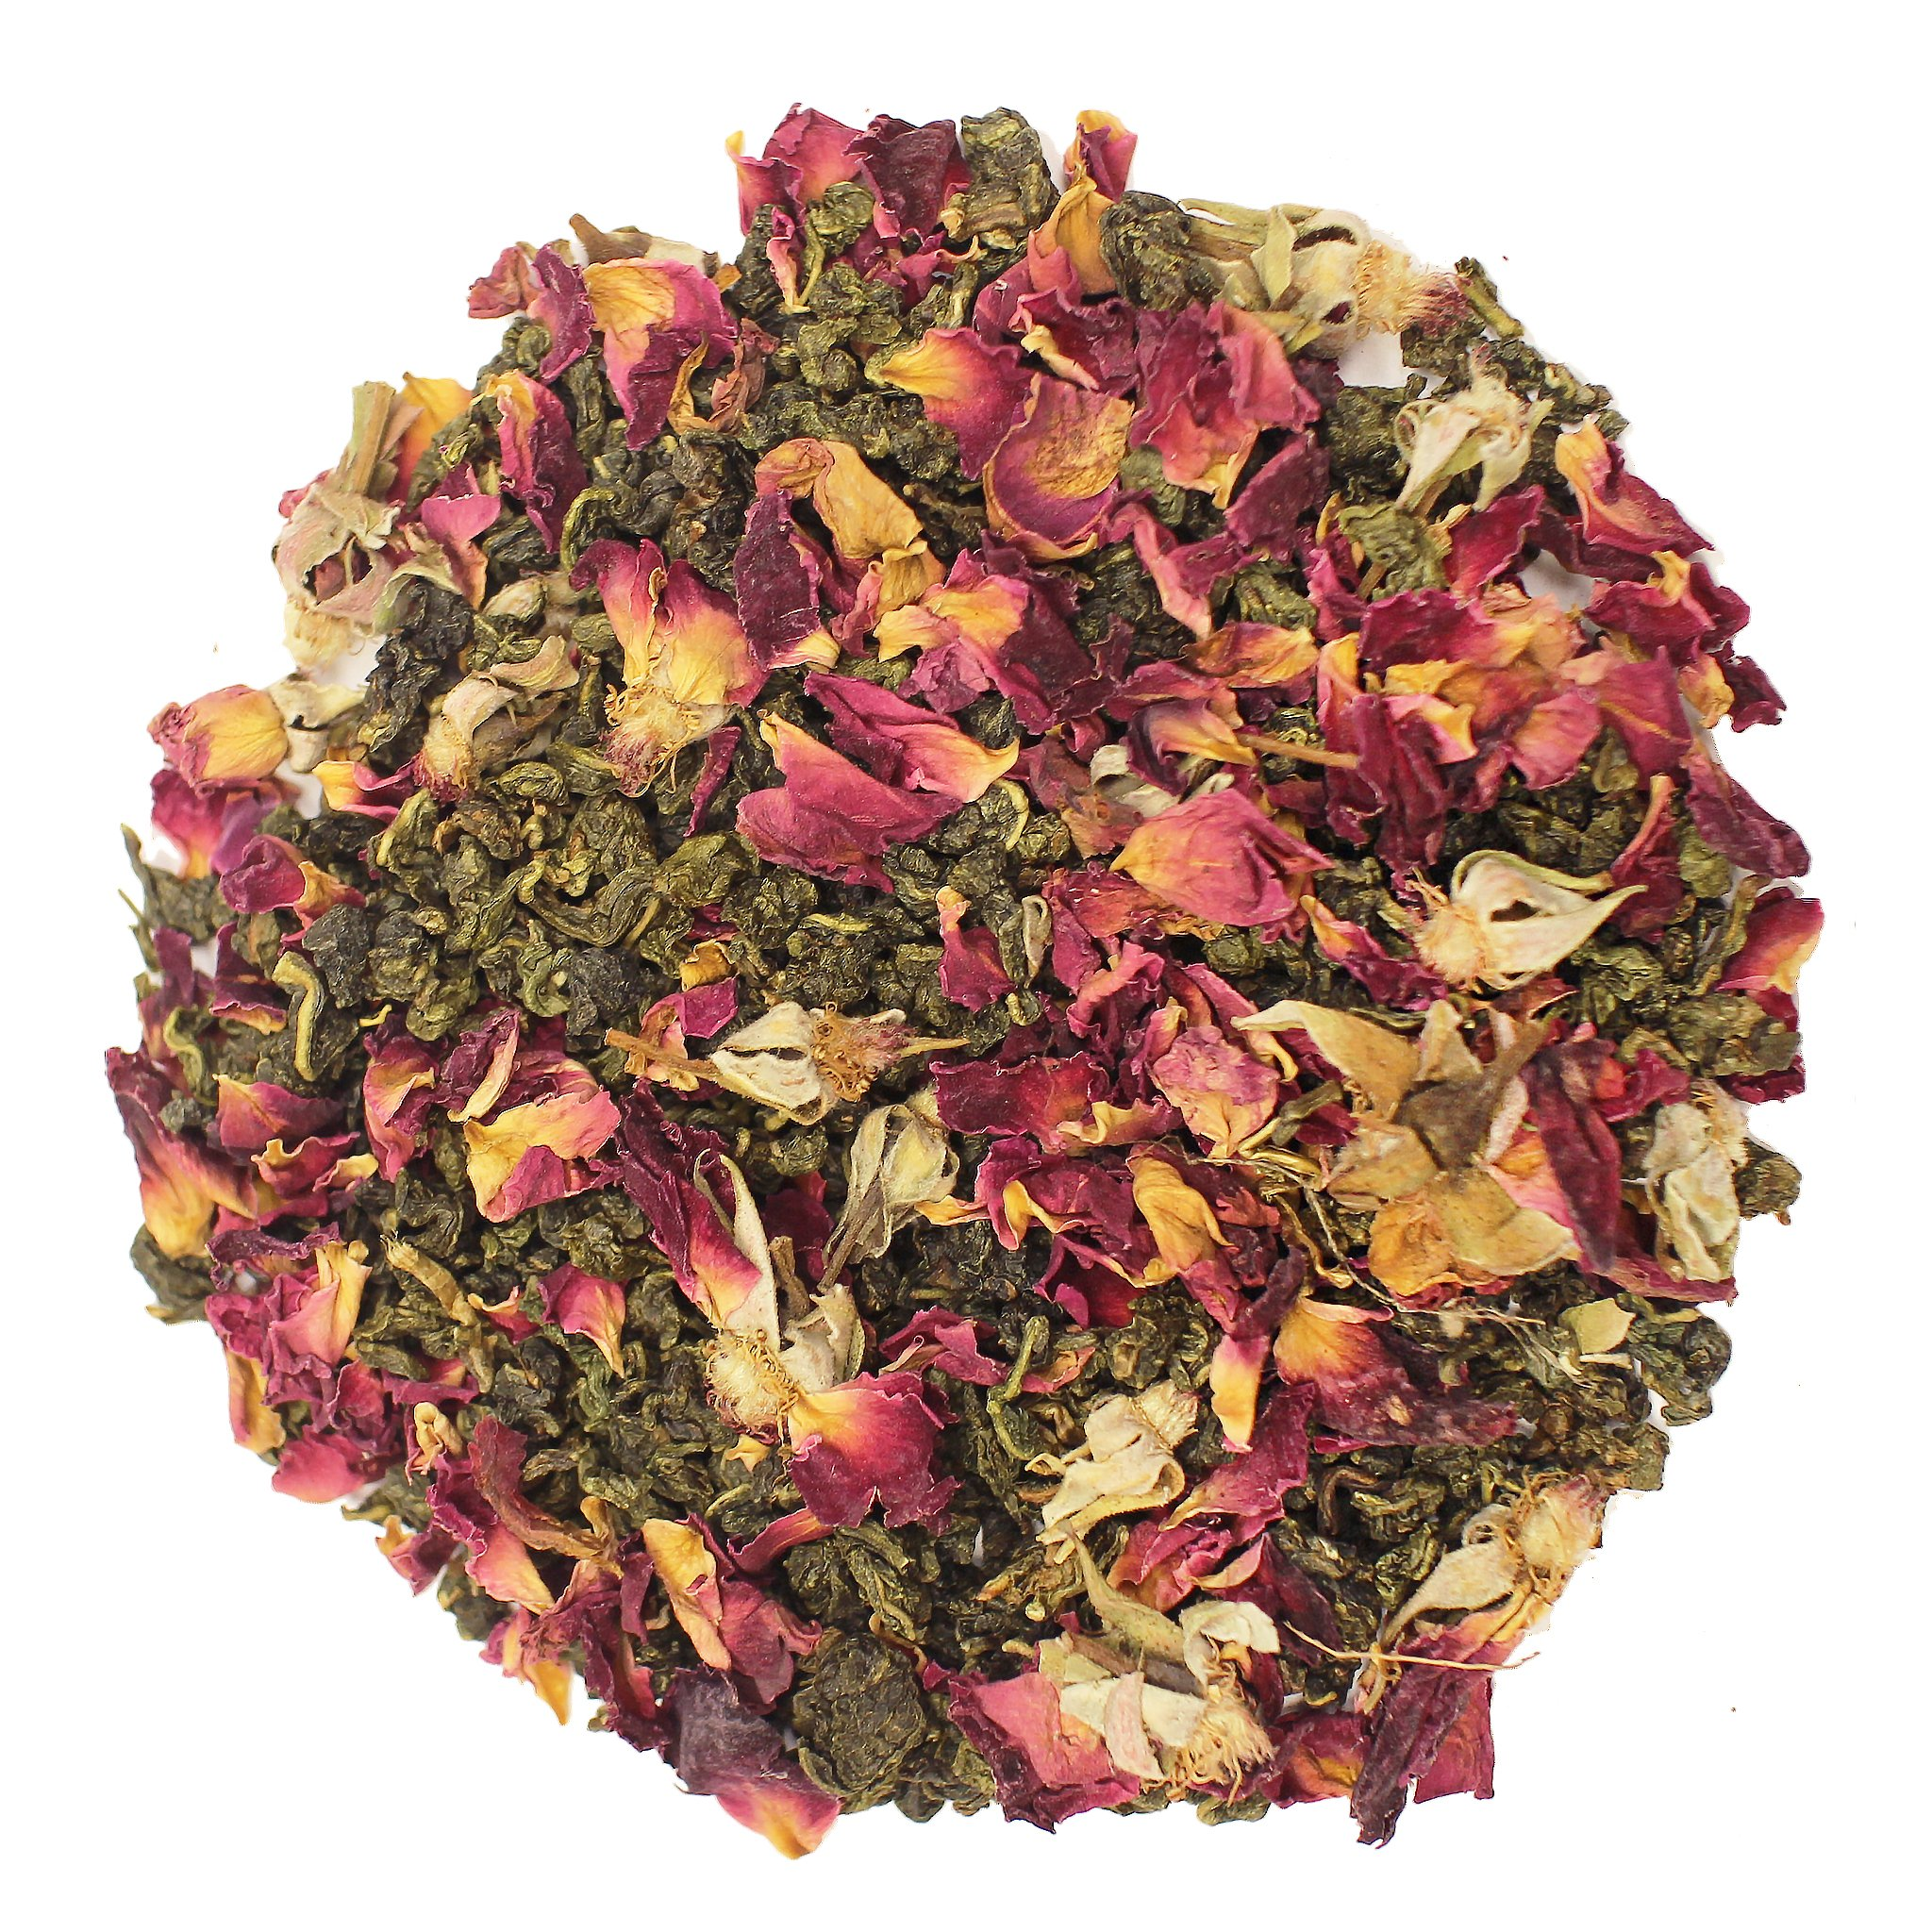 The Tea Farm - Rose Oolong Tea - Chinese Loose Leaf Oolong Tea (16 Ounce Bag) by The Tea Farm